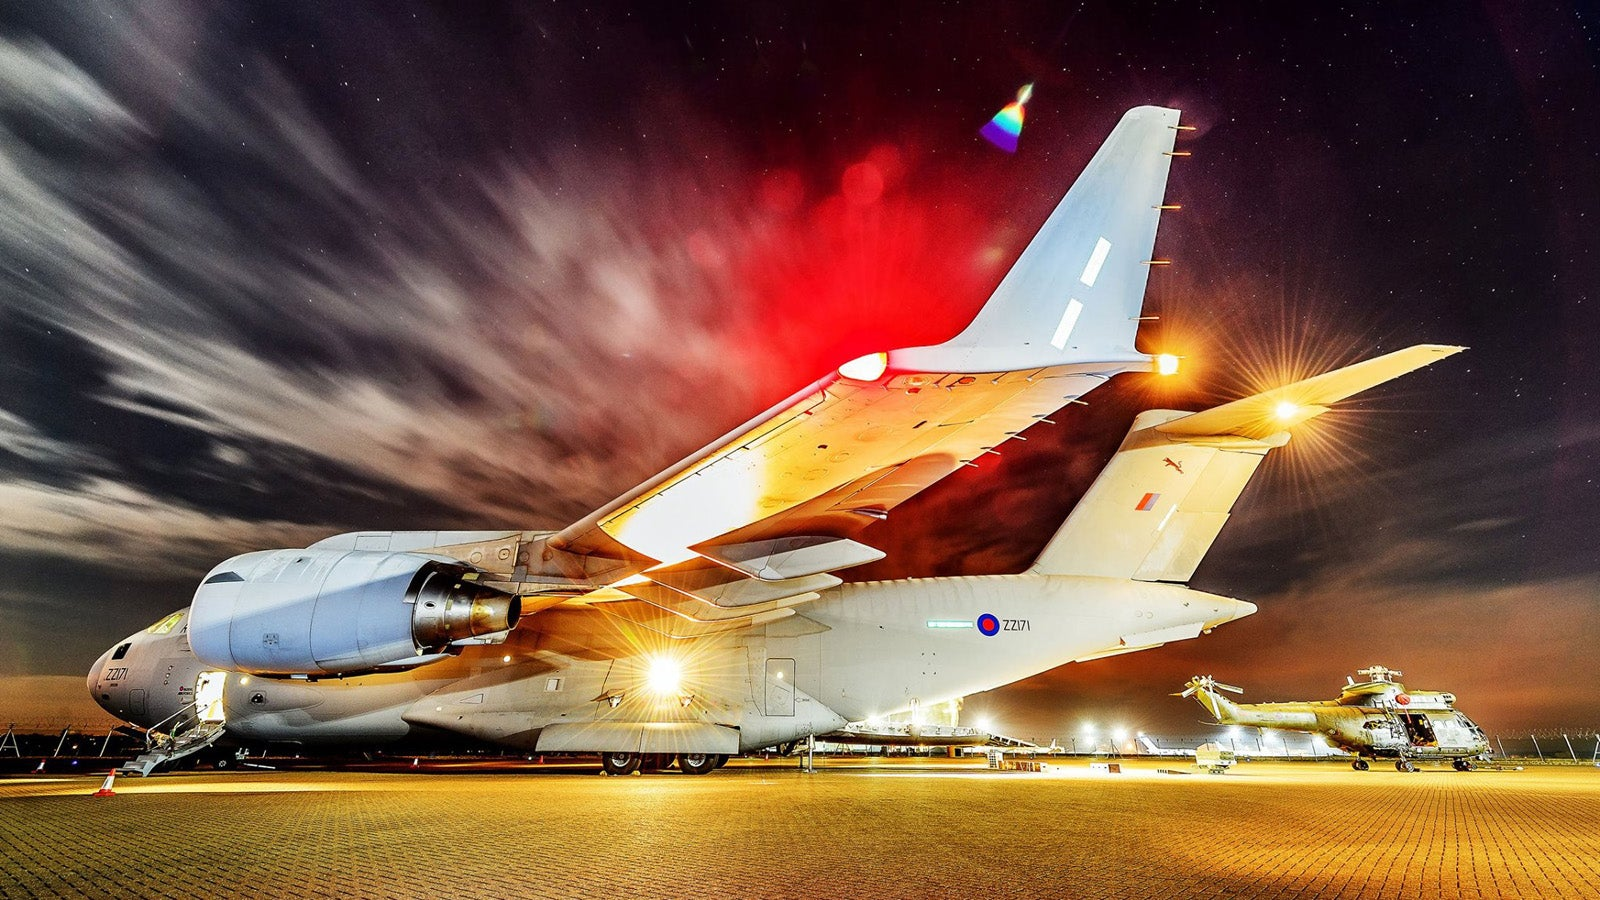 Spectacular Night Photos of the New Puma Helicopter